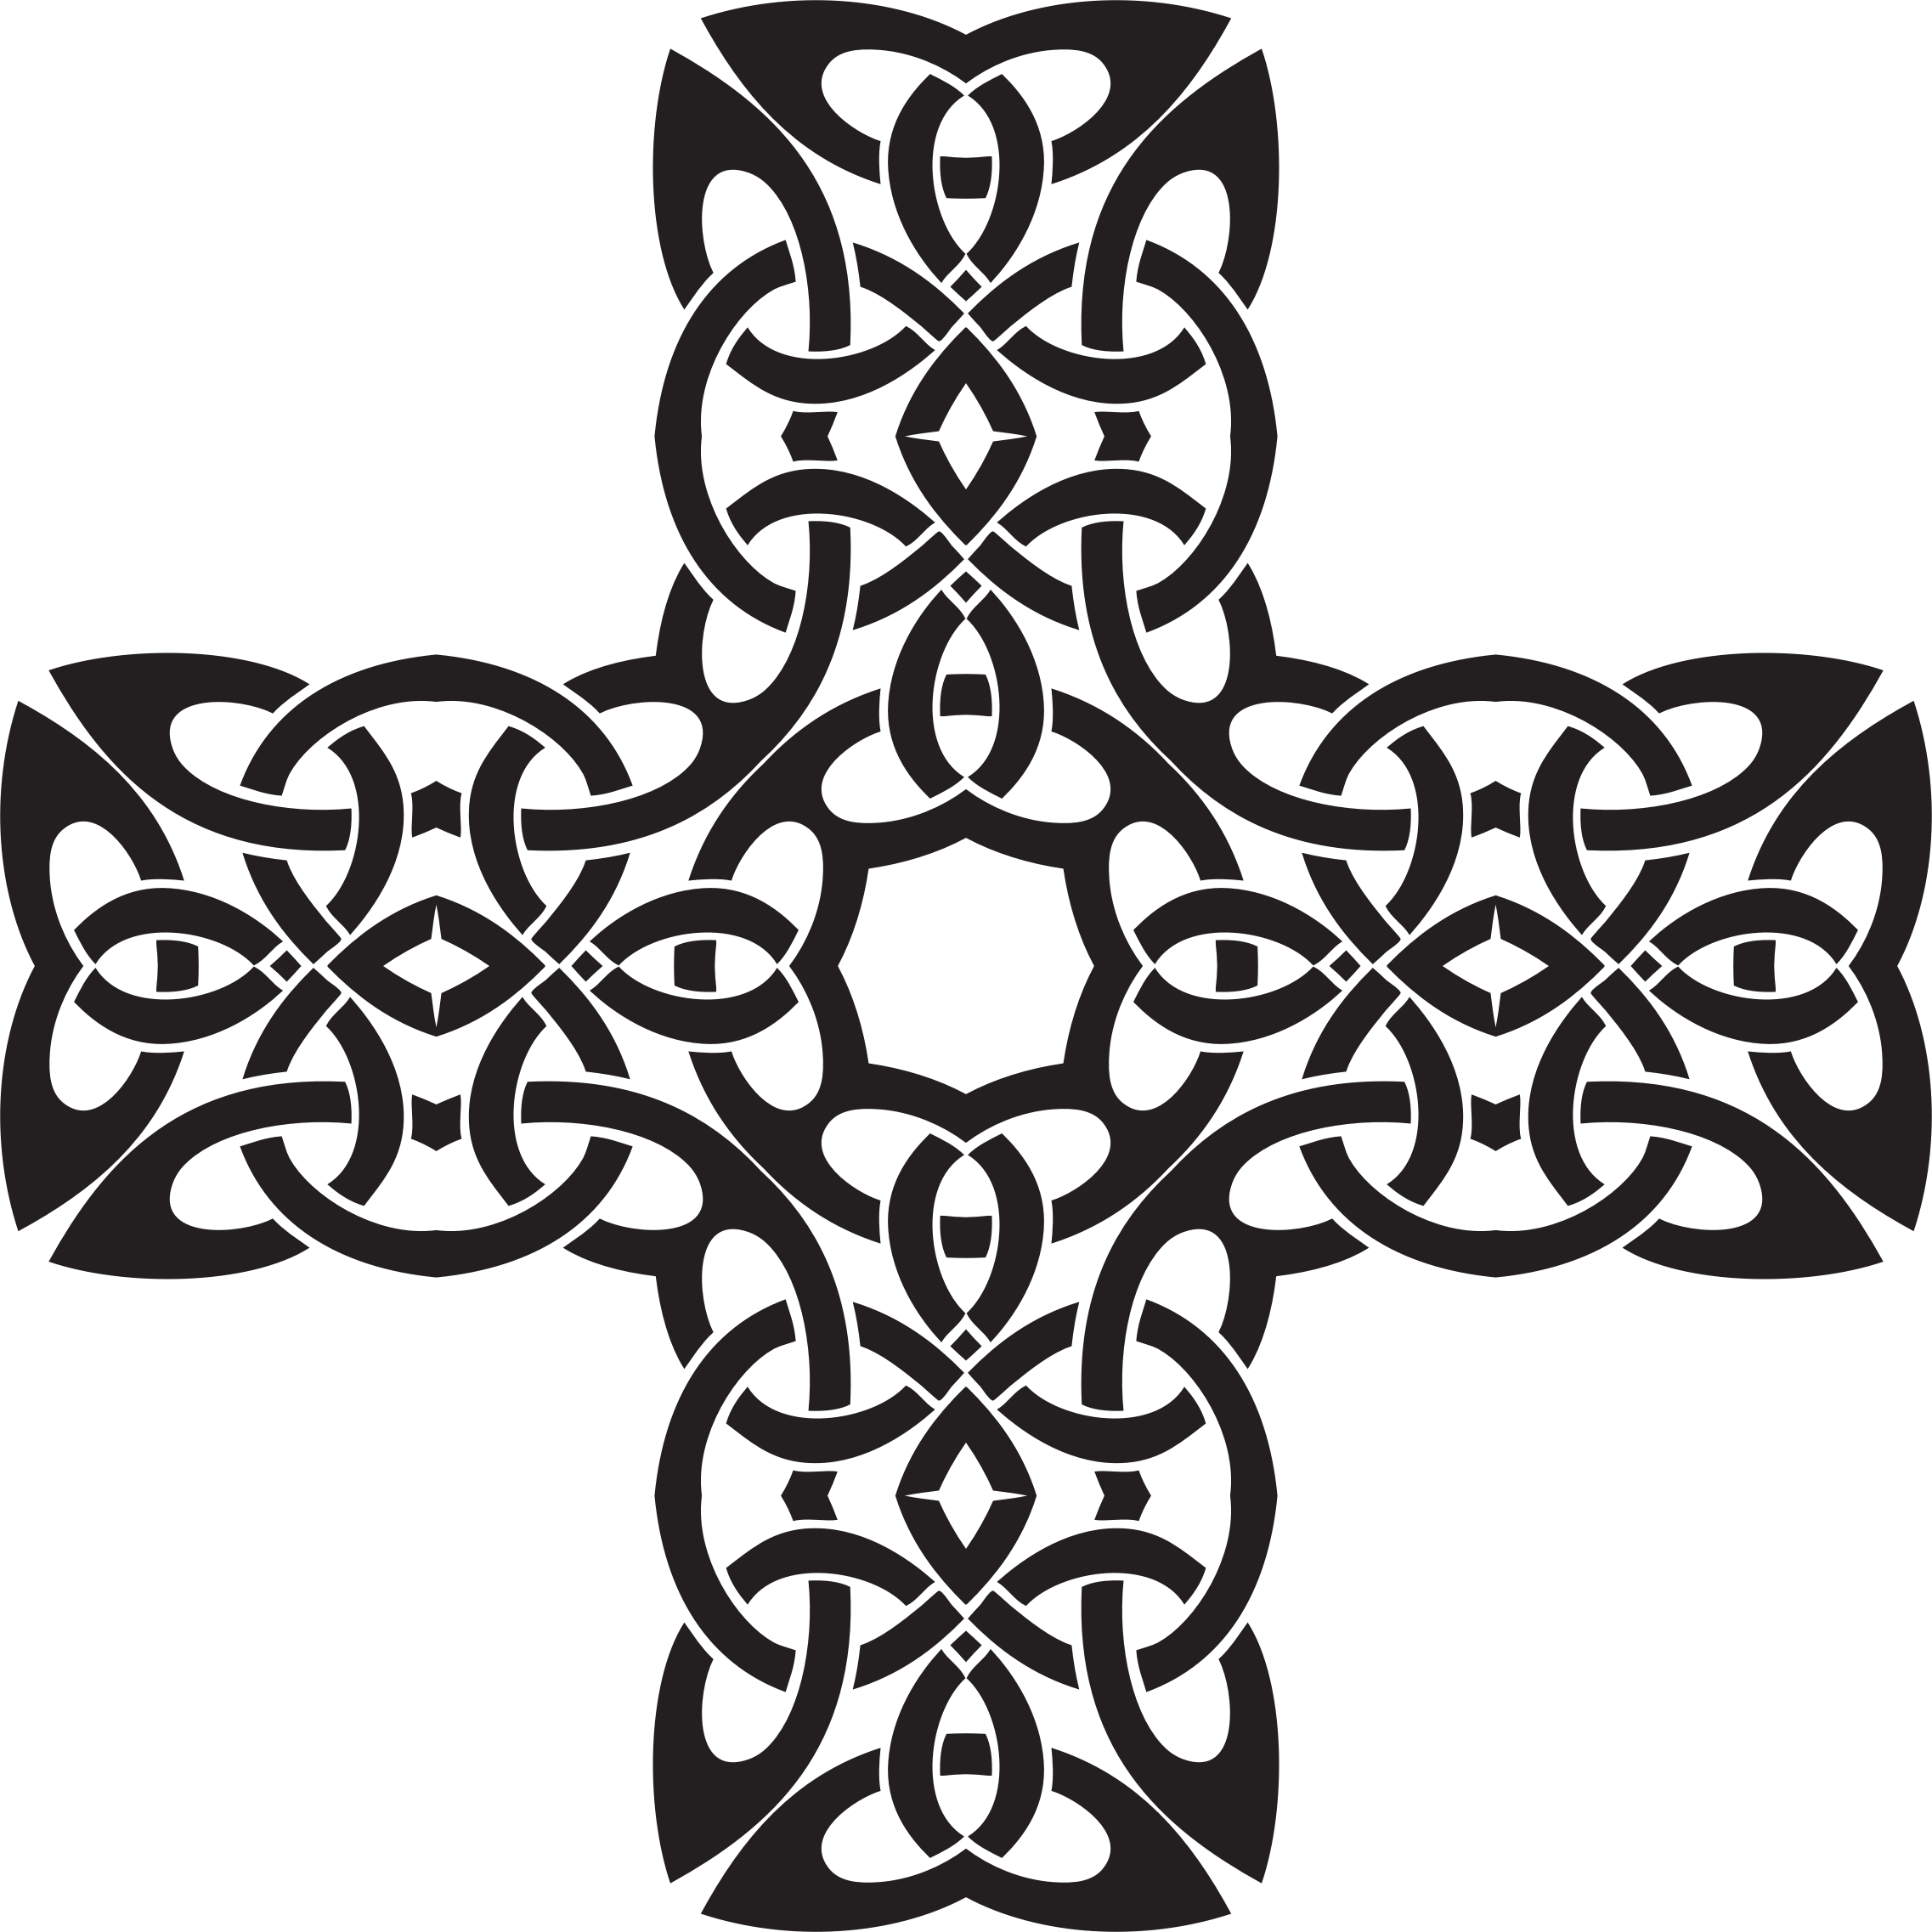 Celtic Knot Cross 2 by GDJ